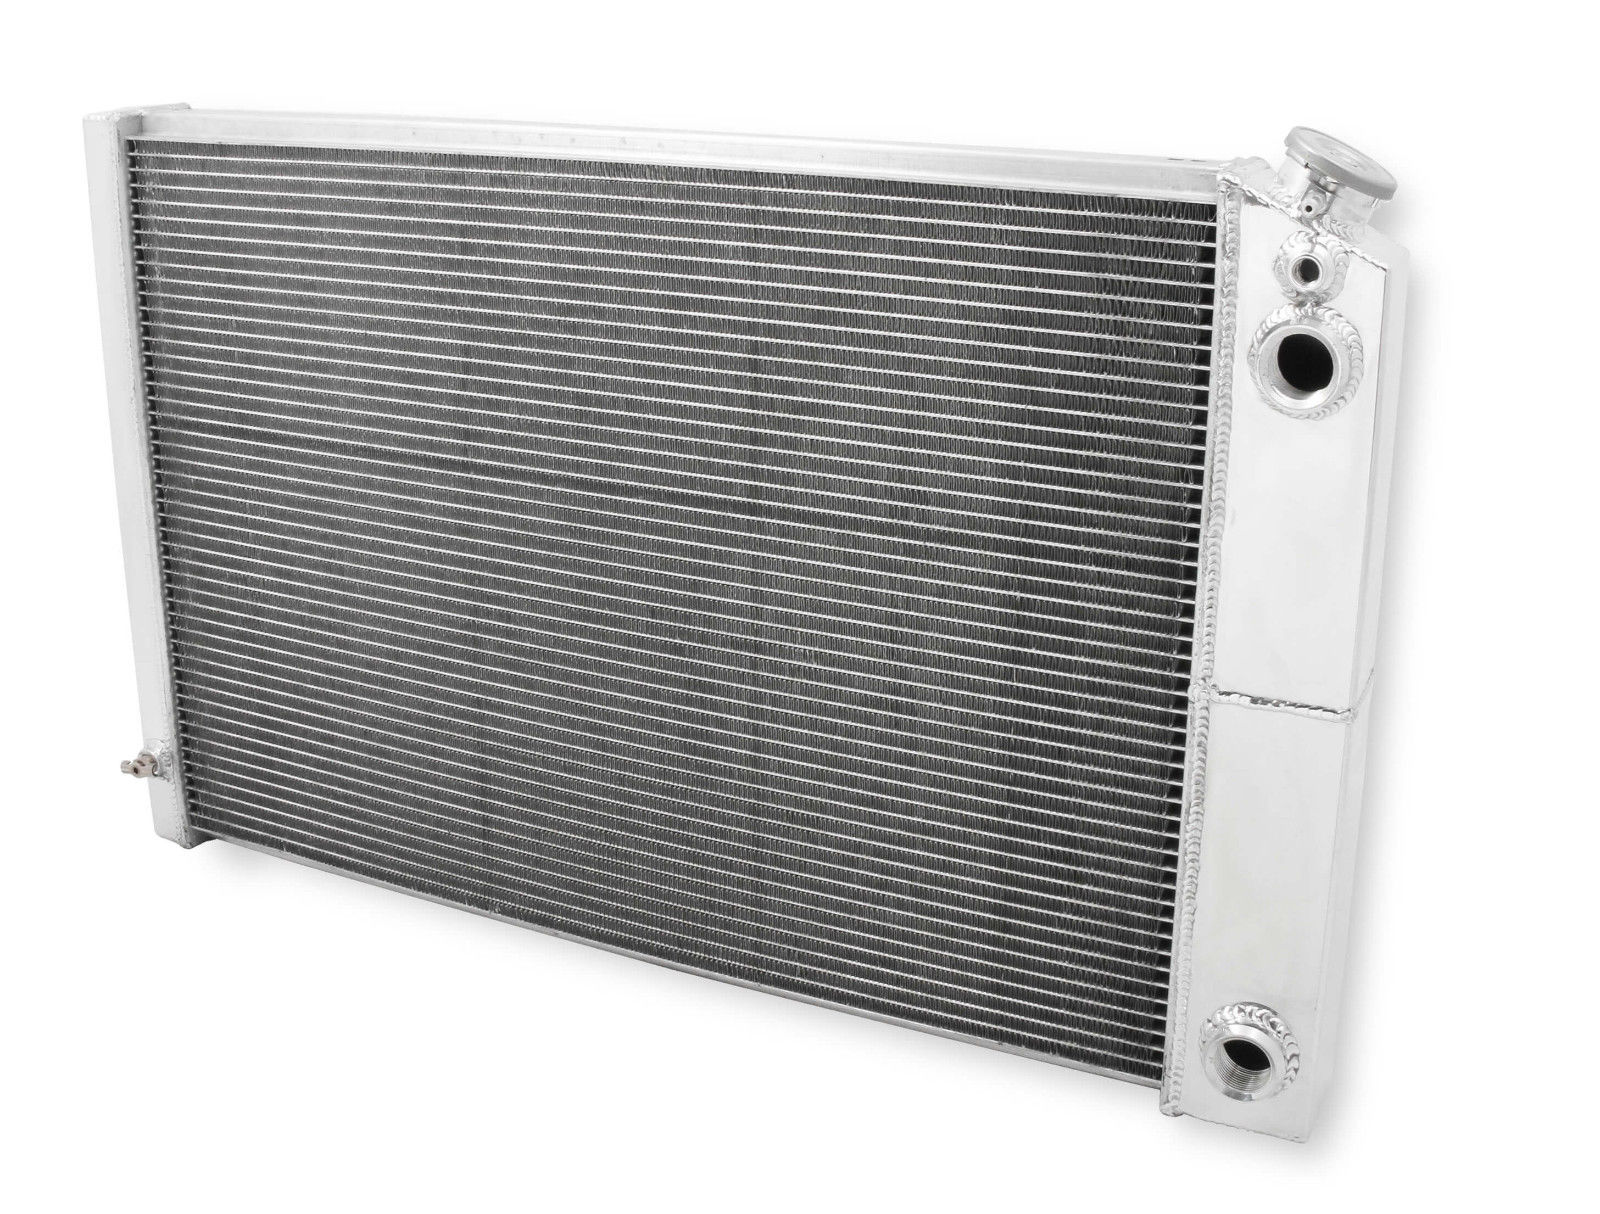 Frostbite FB305 1973-1987 GM C10 LS Swap Aluminum 3 Row Radiator